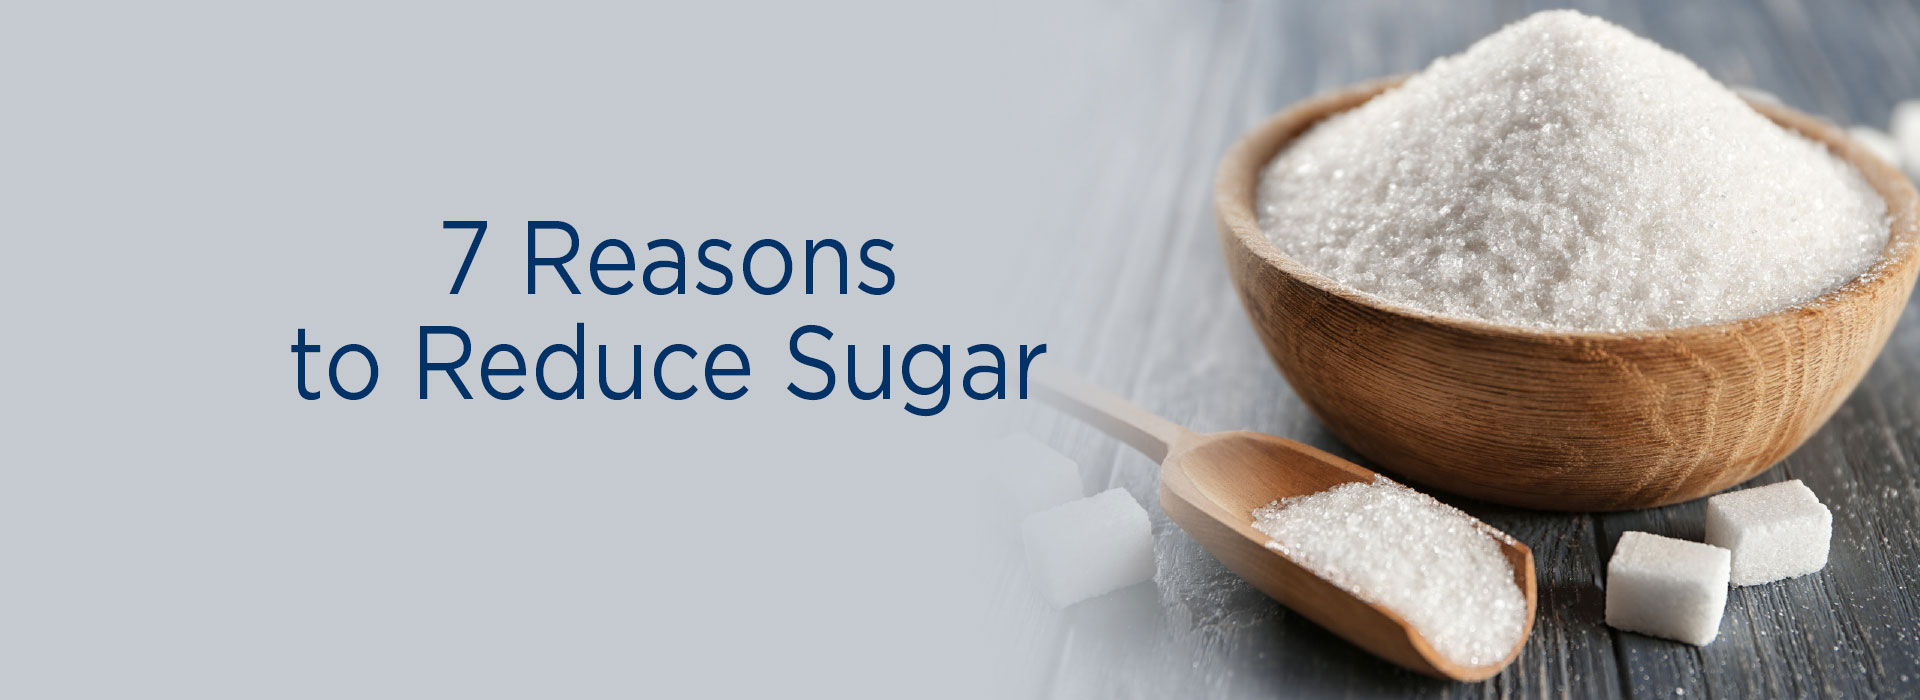 New Image International: 7 Reasons to Reduce Sugar